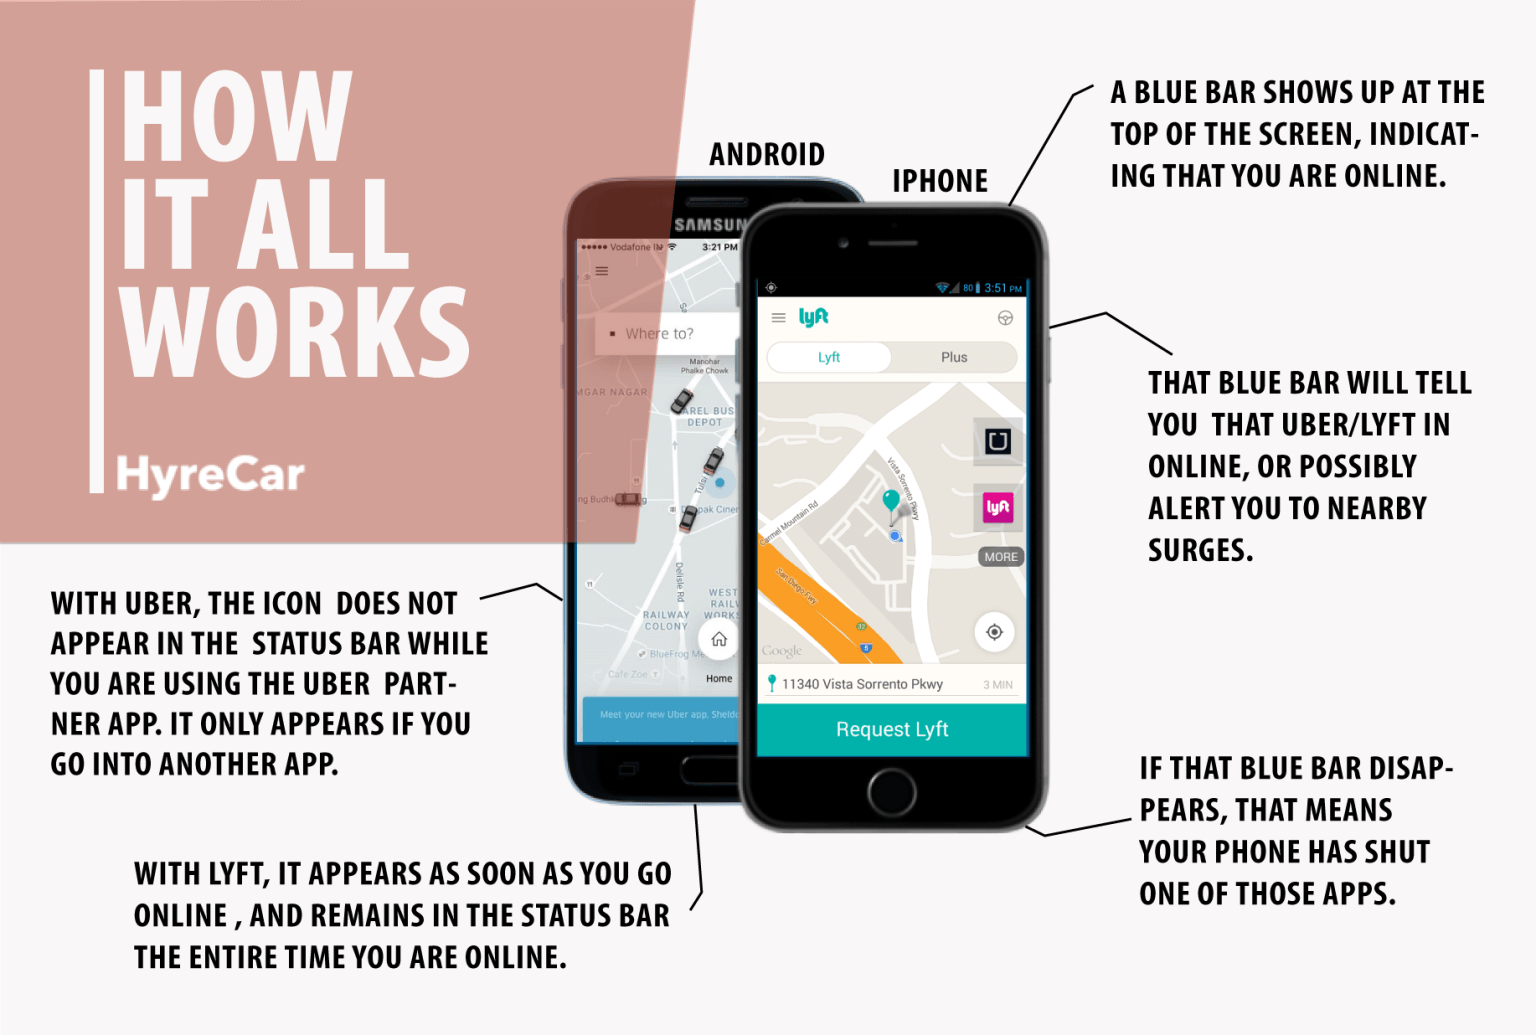 Can You Drive For Both Uber and Lyft?